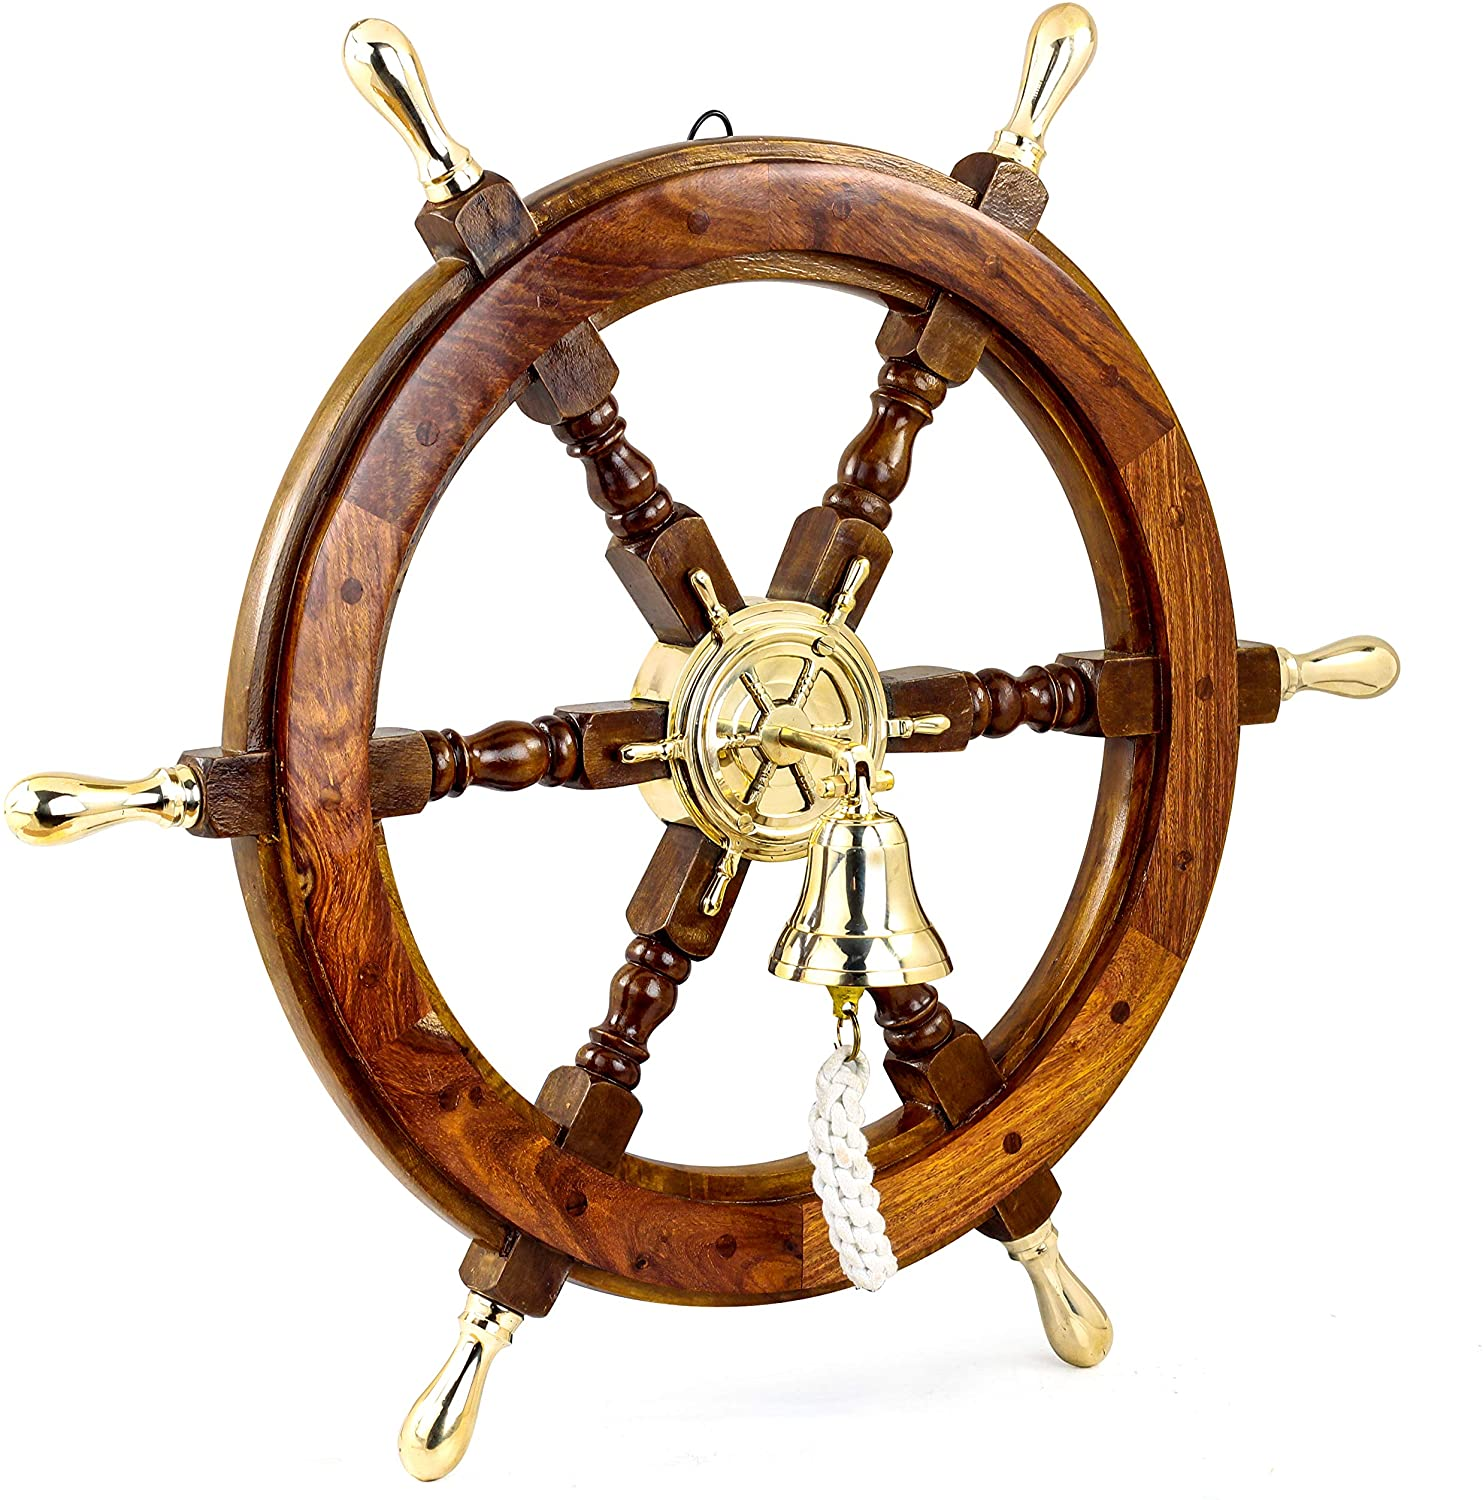 Nagina International Nautical Polished Brass Handle Ship Wheel with Bell | Beach Decor Gift | Pirate's (60 Inches)